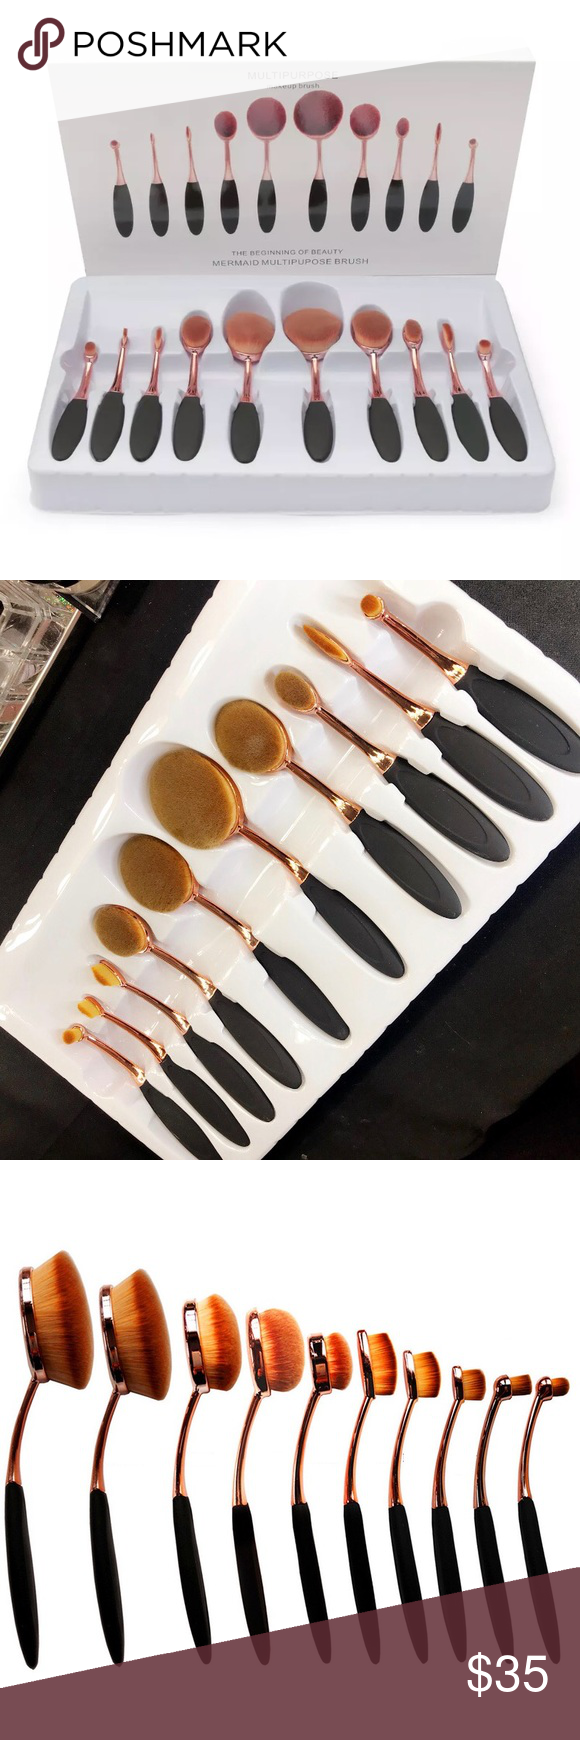 Brand New Professional 10pcs Oval Makeup Brushes NWT